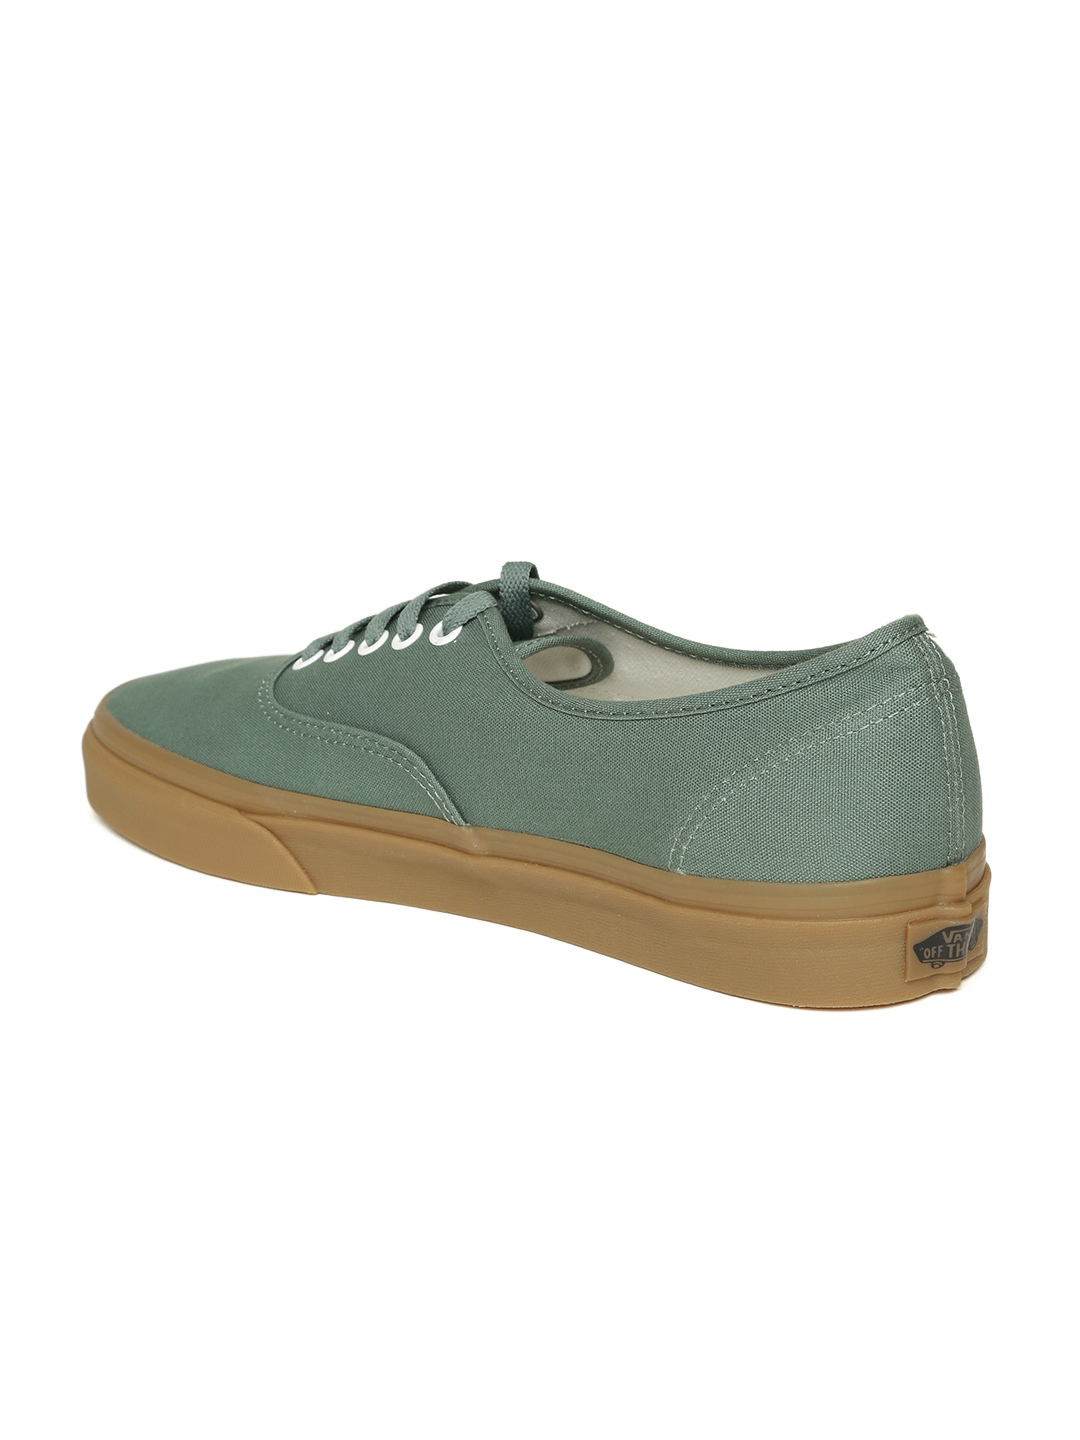 ba367873ca Buy Vans Unisex Olive Green Sneakers - Casual Shoes for Unisex ...